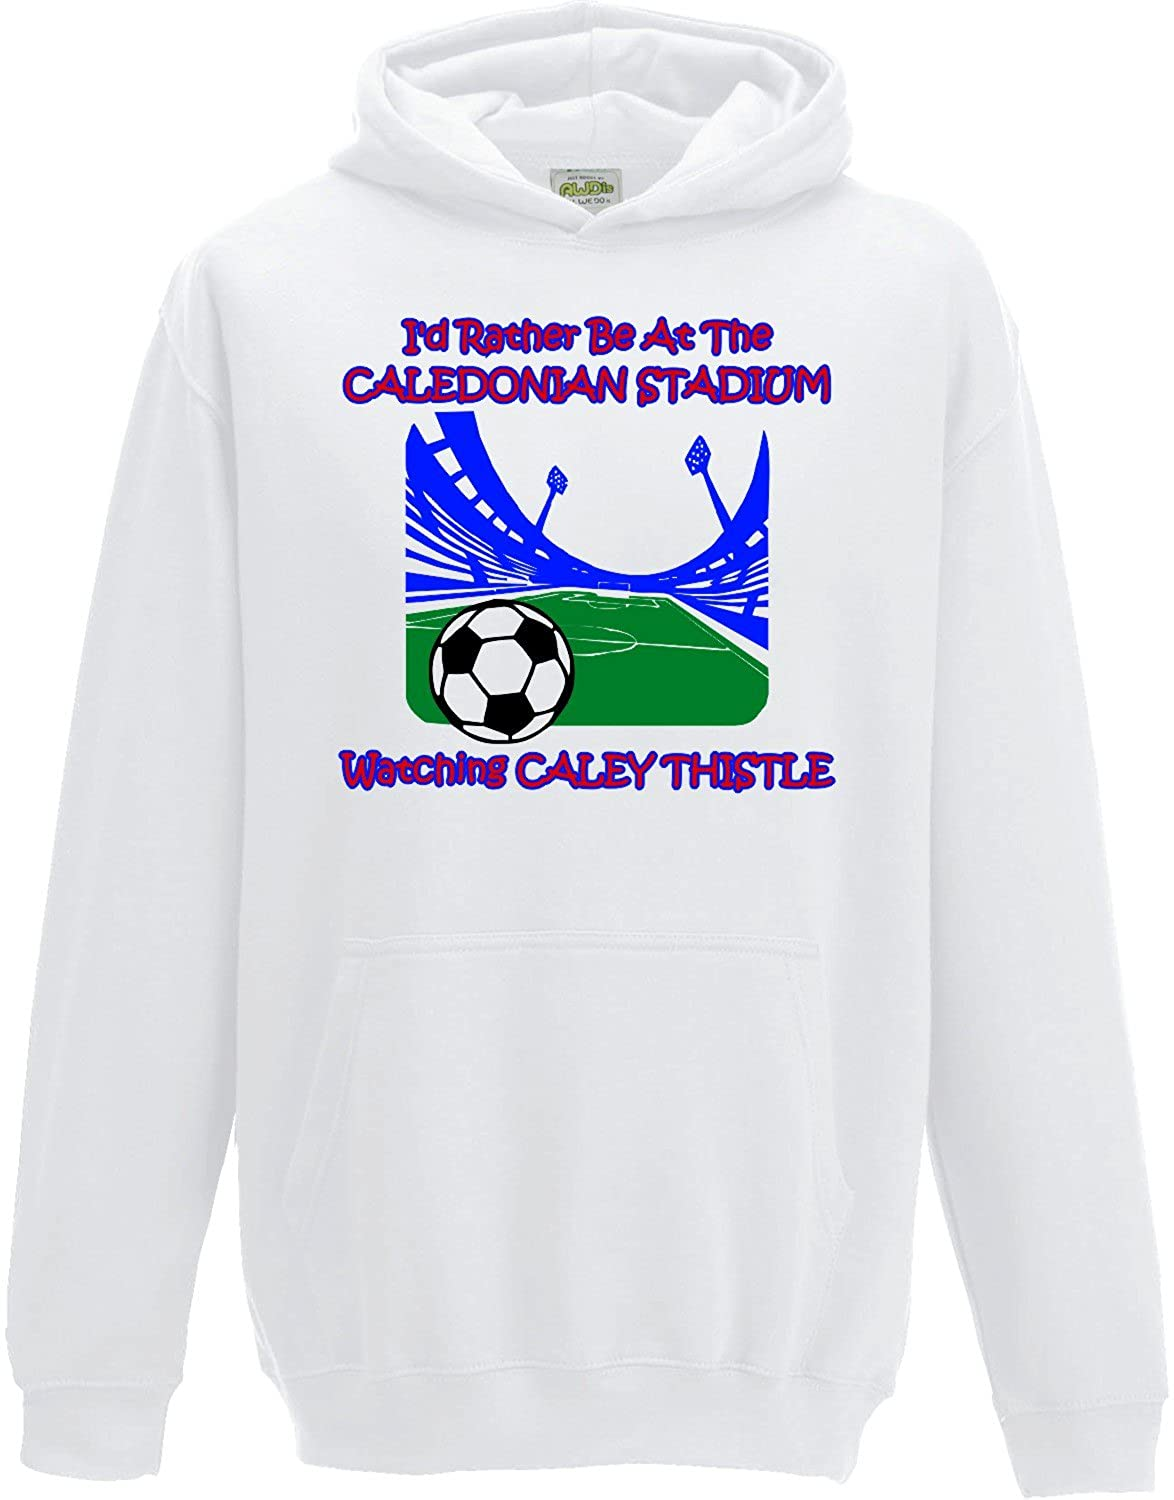 Hat-Trick Designs Inverness Caledonian Thistle Football Baby/Kids/Childrens Hoodie Sweatshirt-White-I'D Rather Be-Unisex Gift